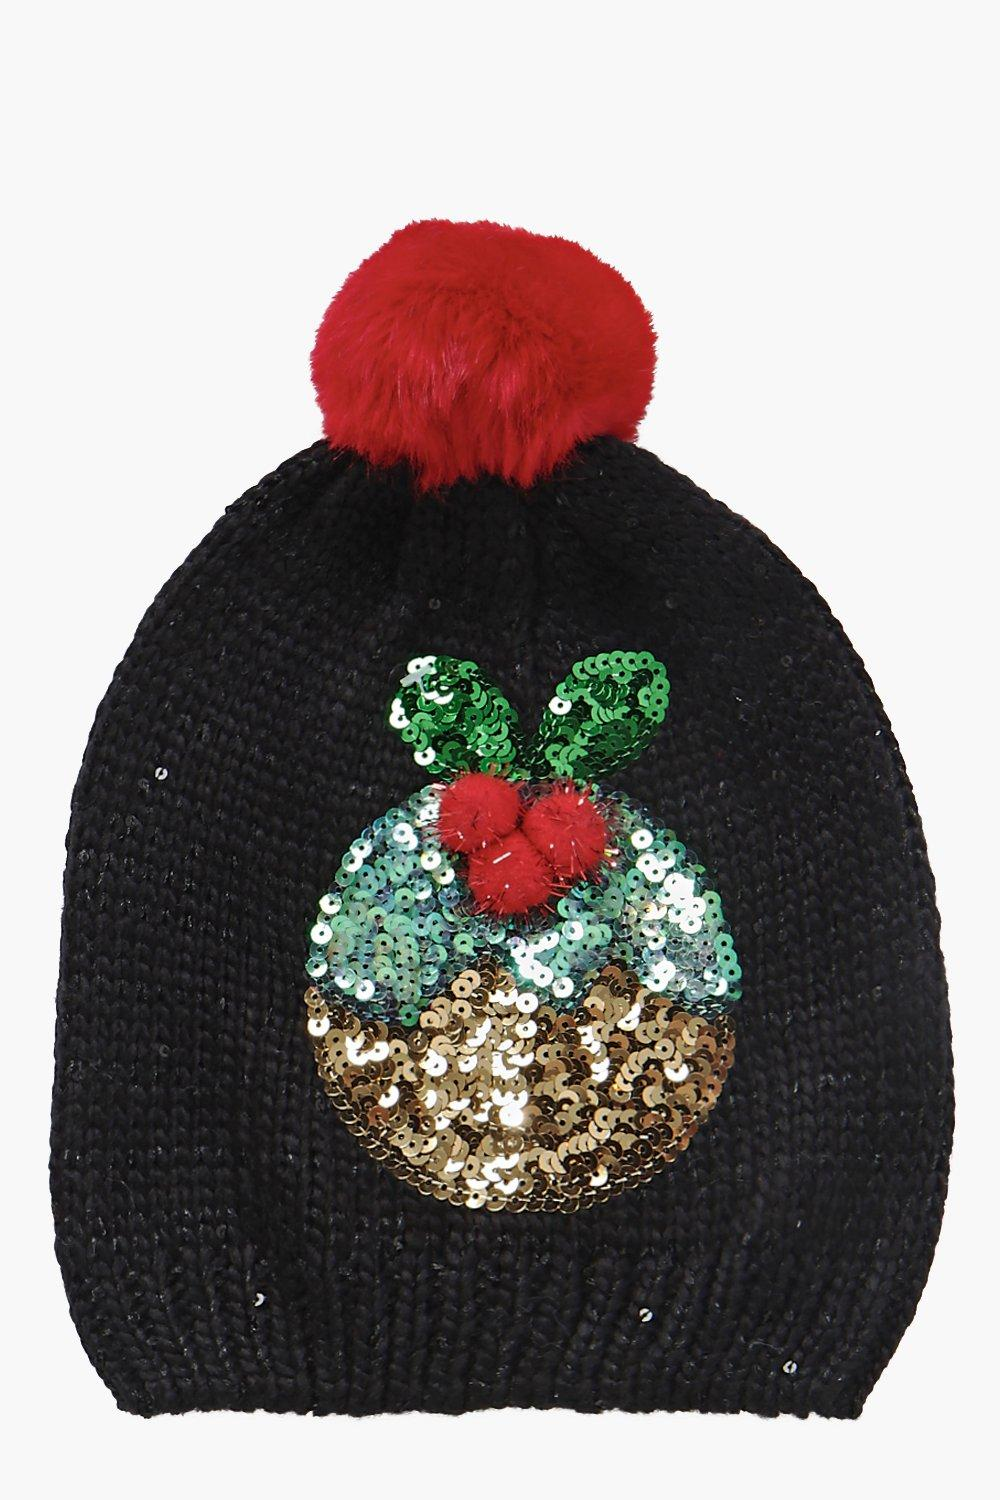 Maisy Sequin Pudding Pom Beanie Hat